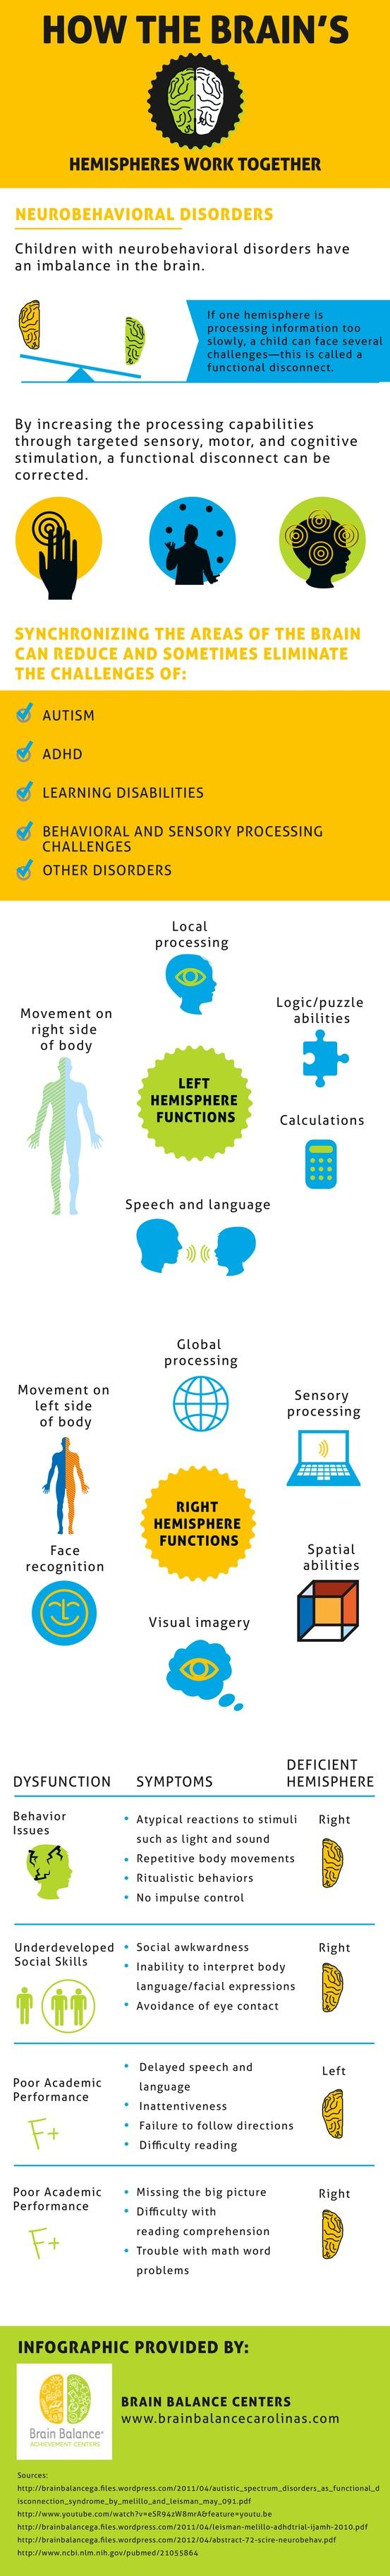 This is an awesome infographic! Explains some of the root causes of ADHD, Autism Spectrum Disorder, Dyslexia and other nuerobehavioral disorders.